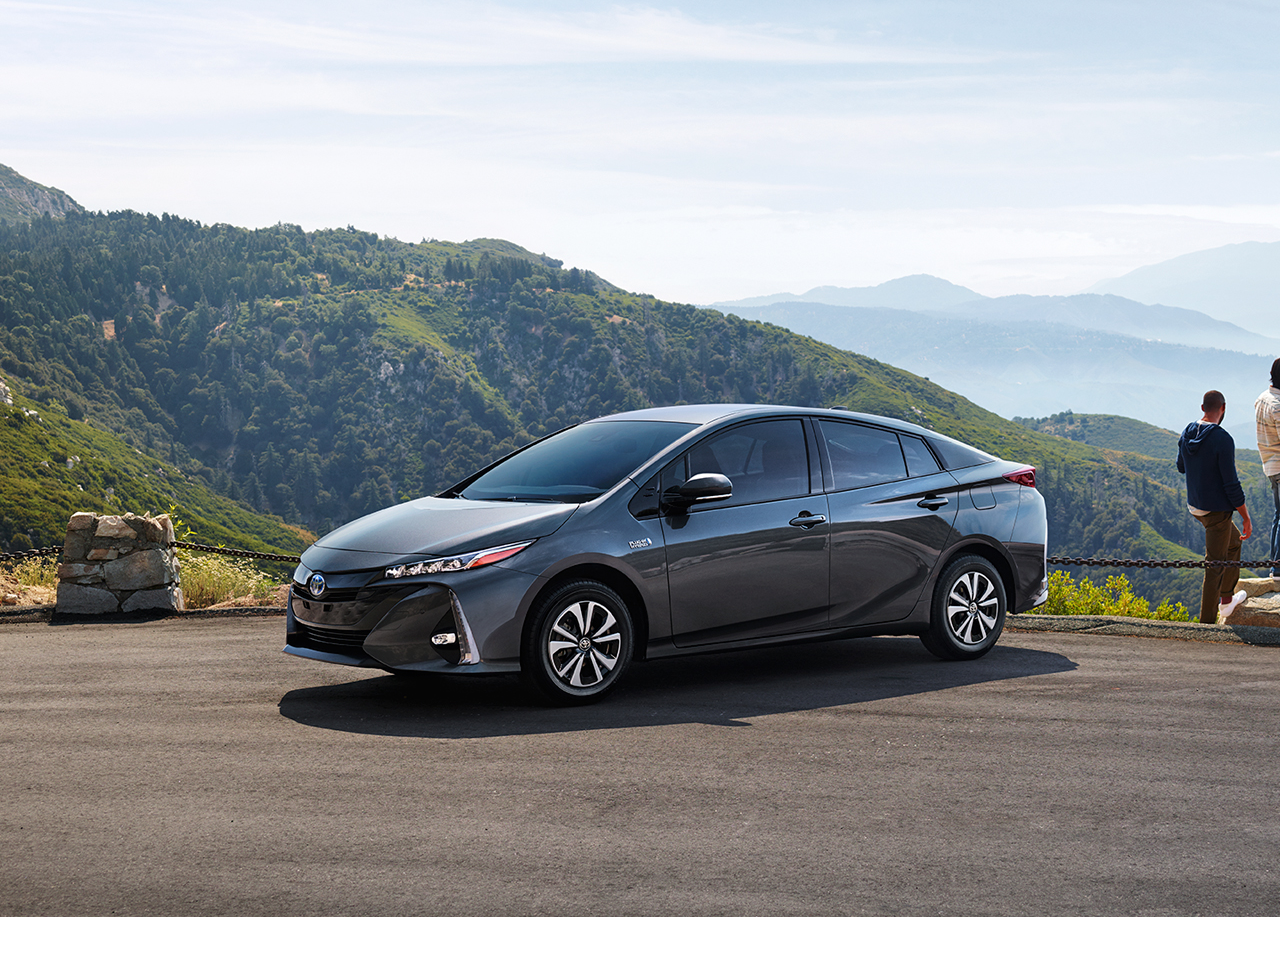 Toyota Of San Diego >> 2017 Toyota Prius Prime for sale near San Diego | Toyota